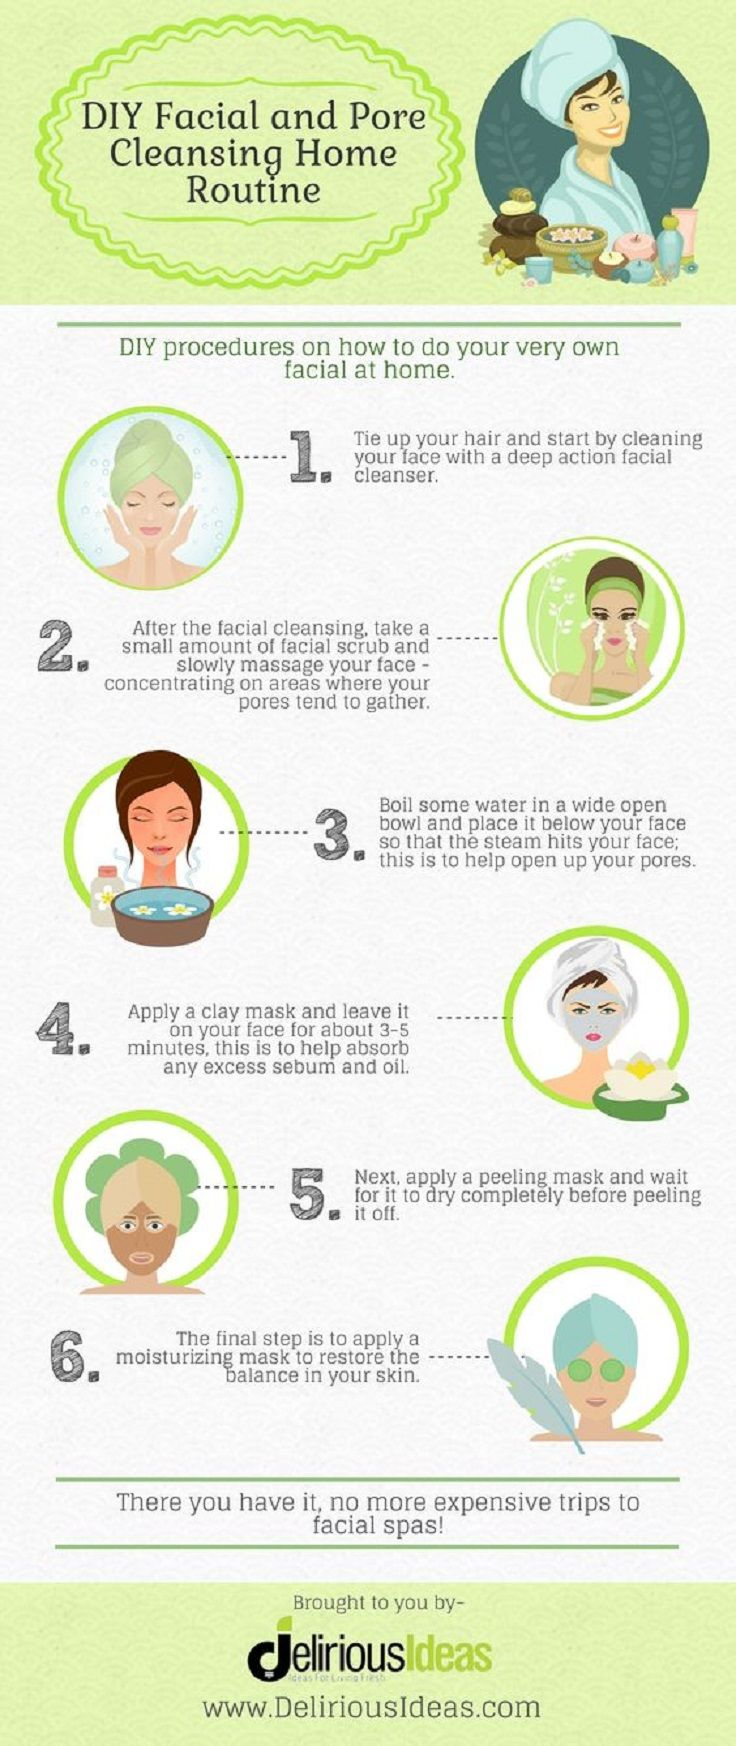 DIY Facial and Pore Cleansing Beauty Routine - Get Rid of Pores Easily: 15 Natural Tricks and DIYs To Shrink Large Pores